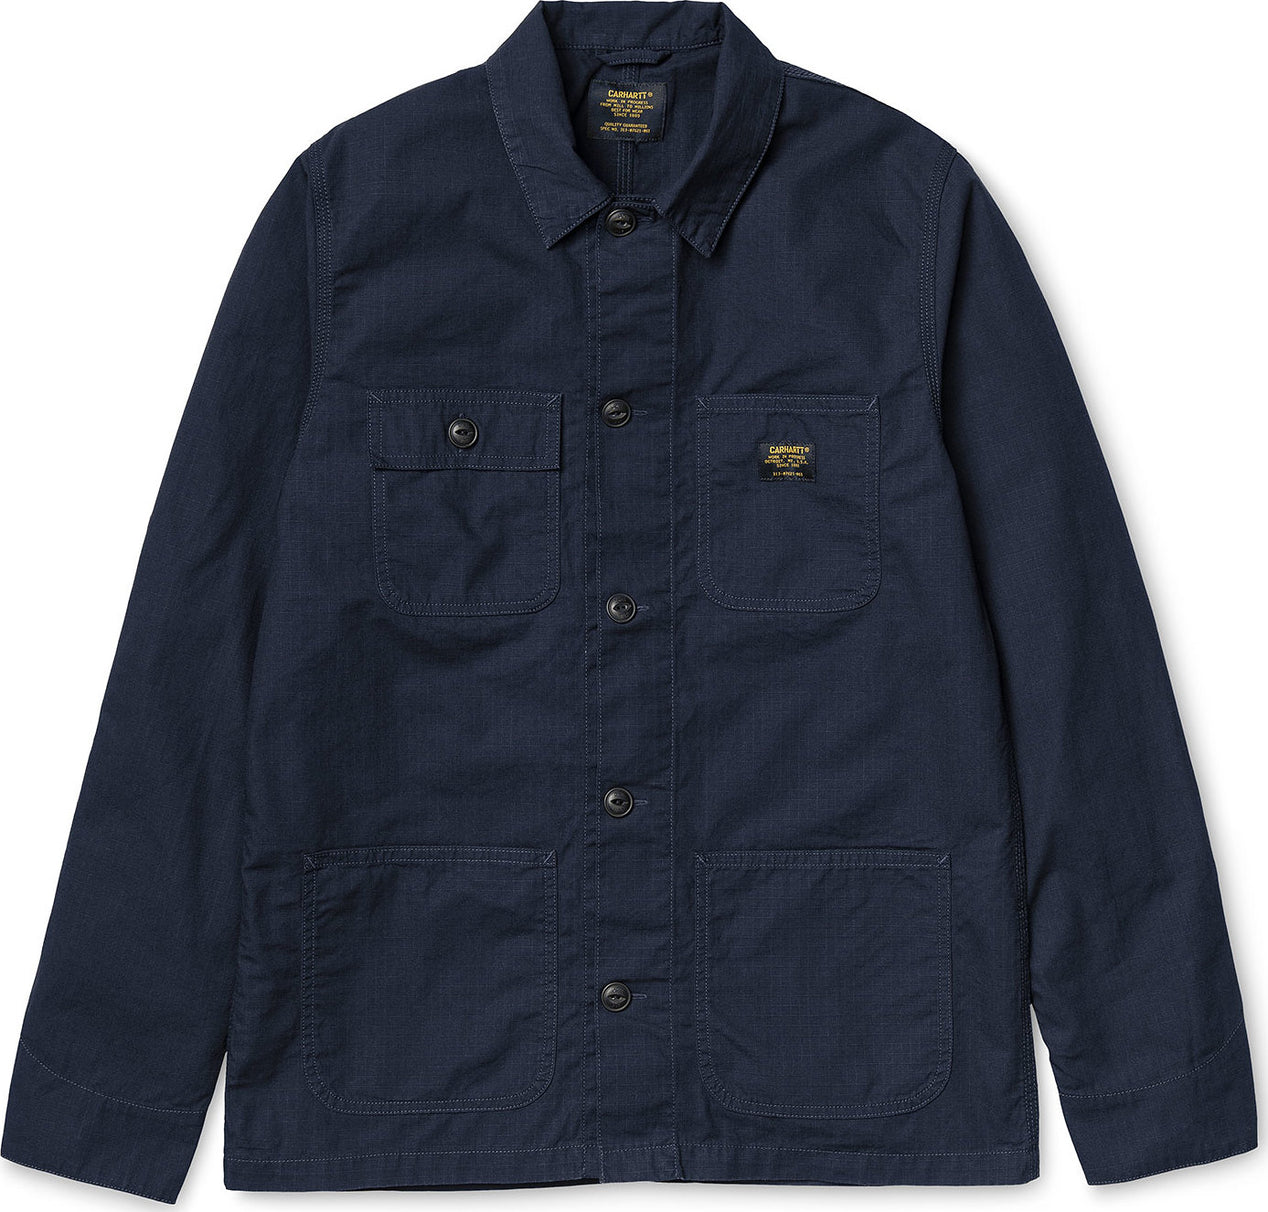 029eab66 Carhartt Work In Progress Michigan Shirt Jacket - Men's | Altitude ...